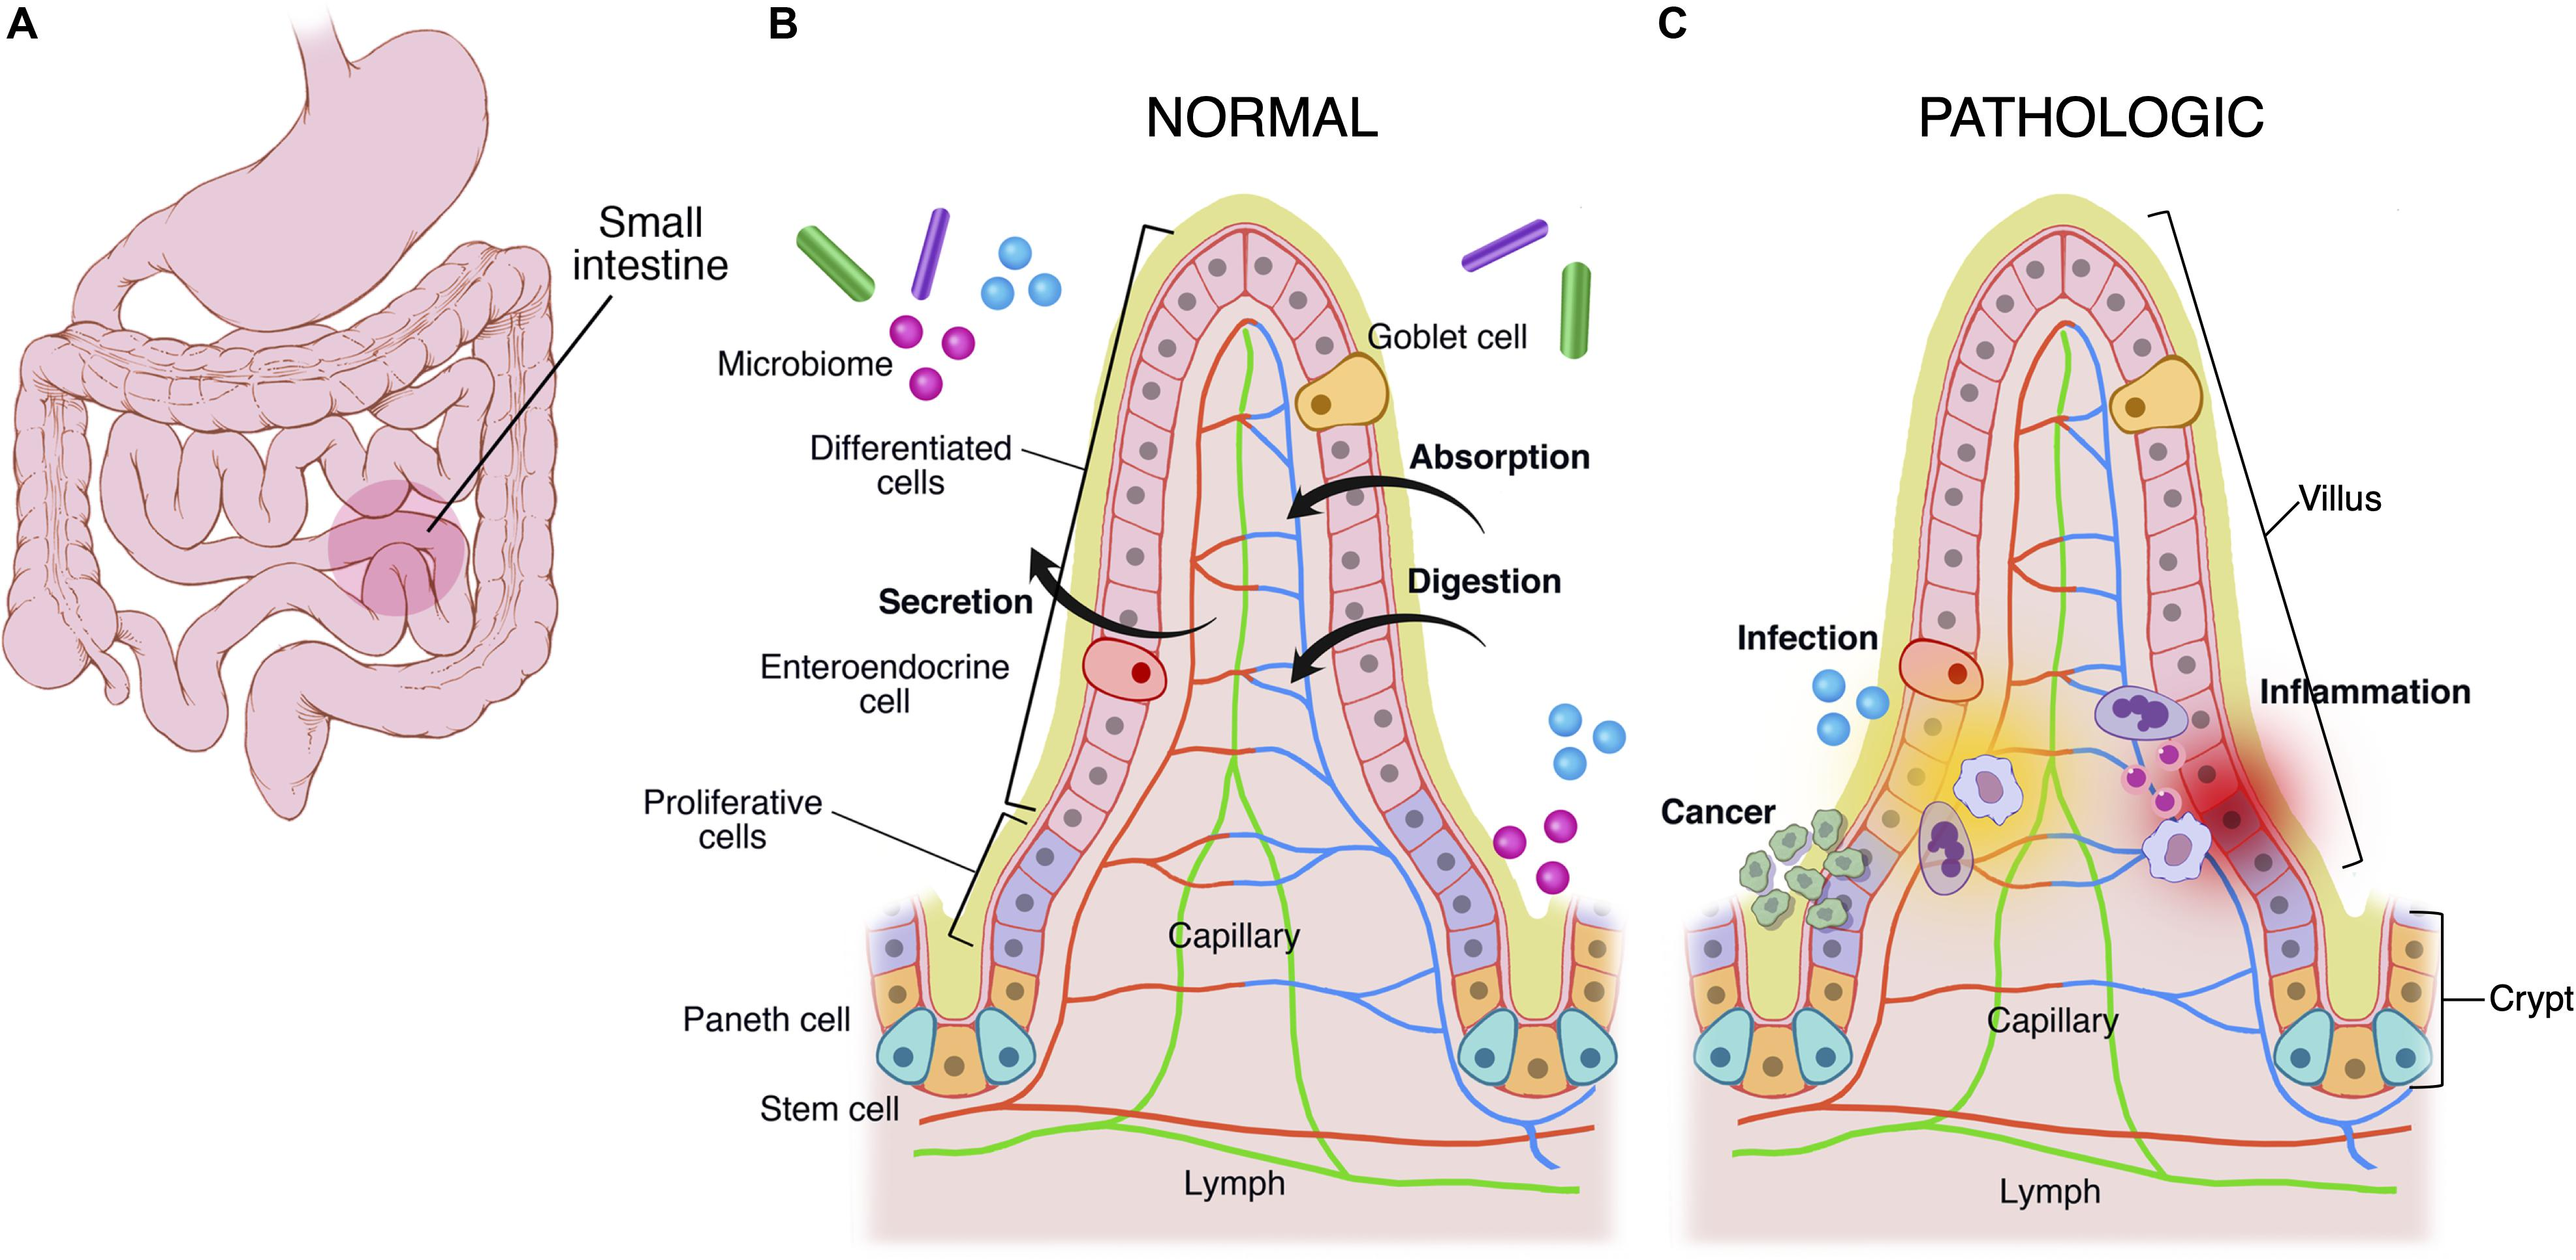 Frontiers Human Microphysiological Models Of Intestinal Tissue And Gut Microbiome Bioengineering And Biotechnology